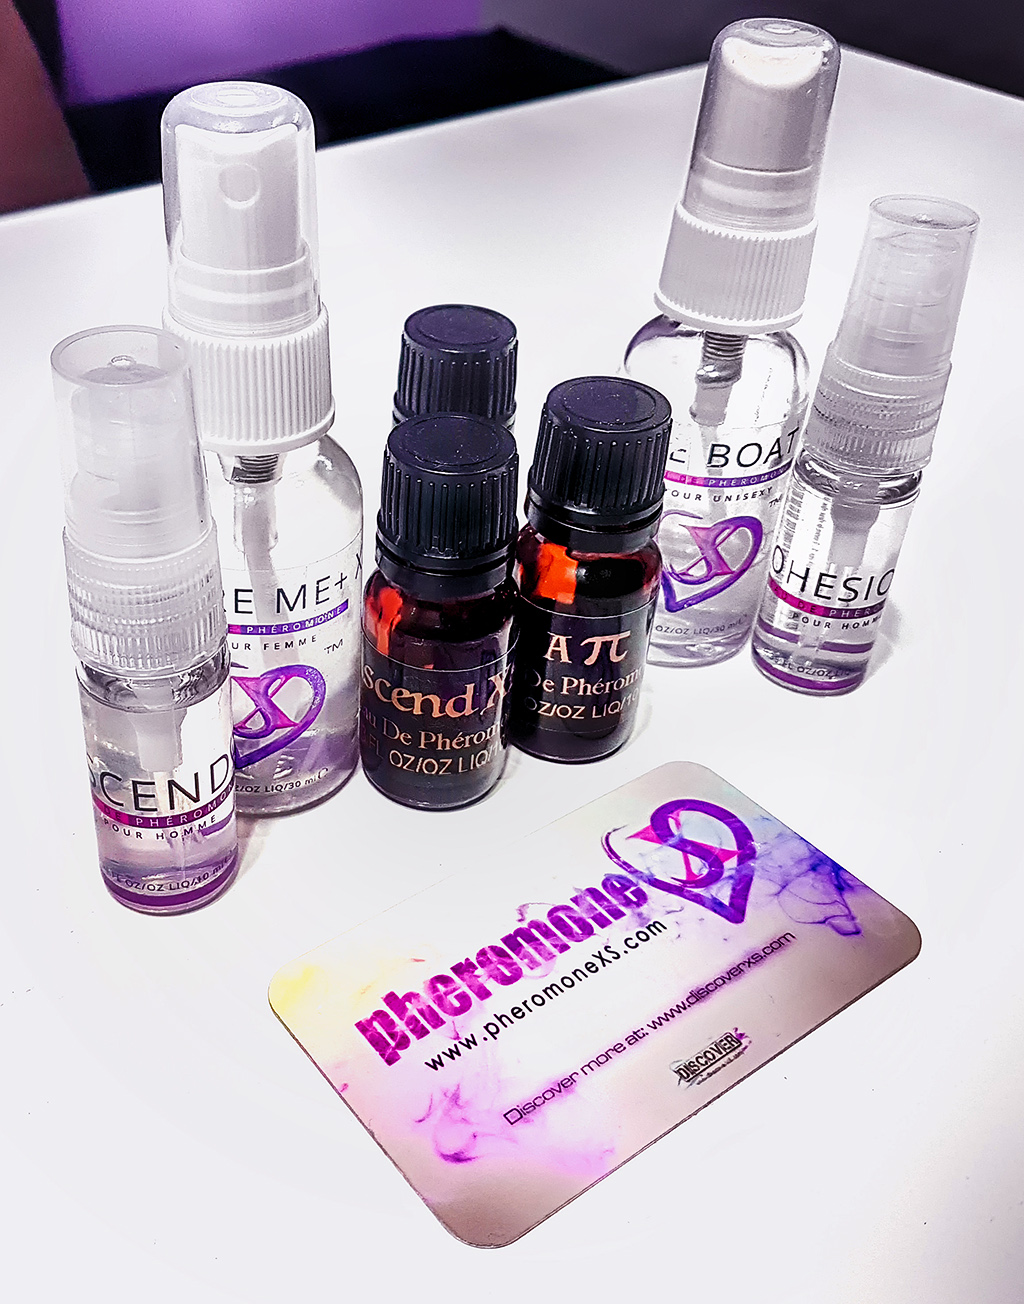 Yet another Pheromone Collection by idlebg